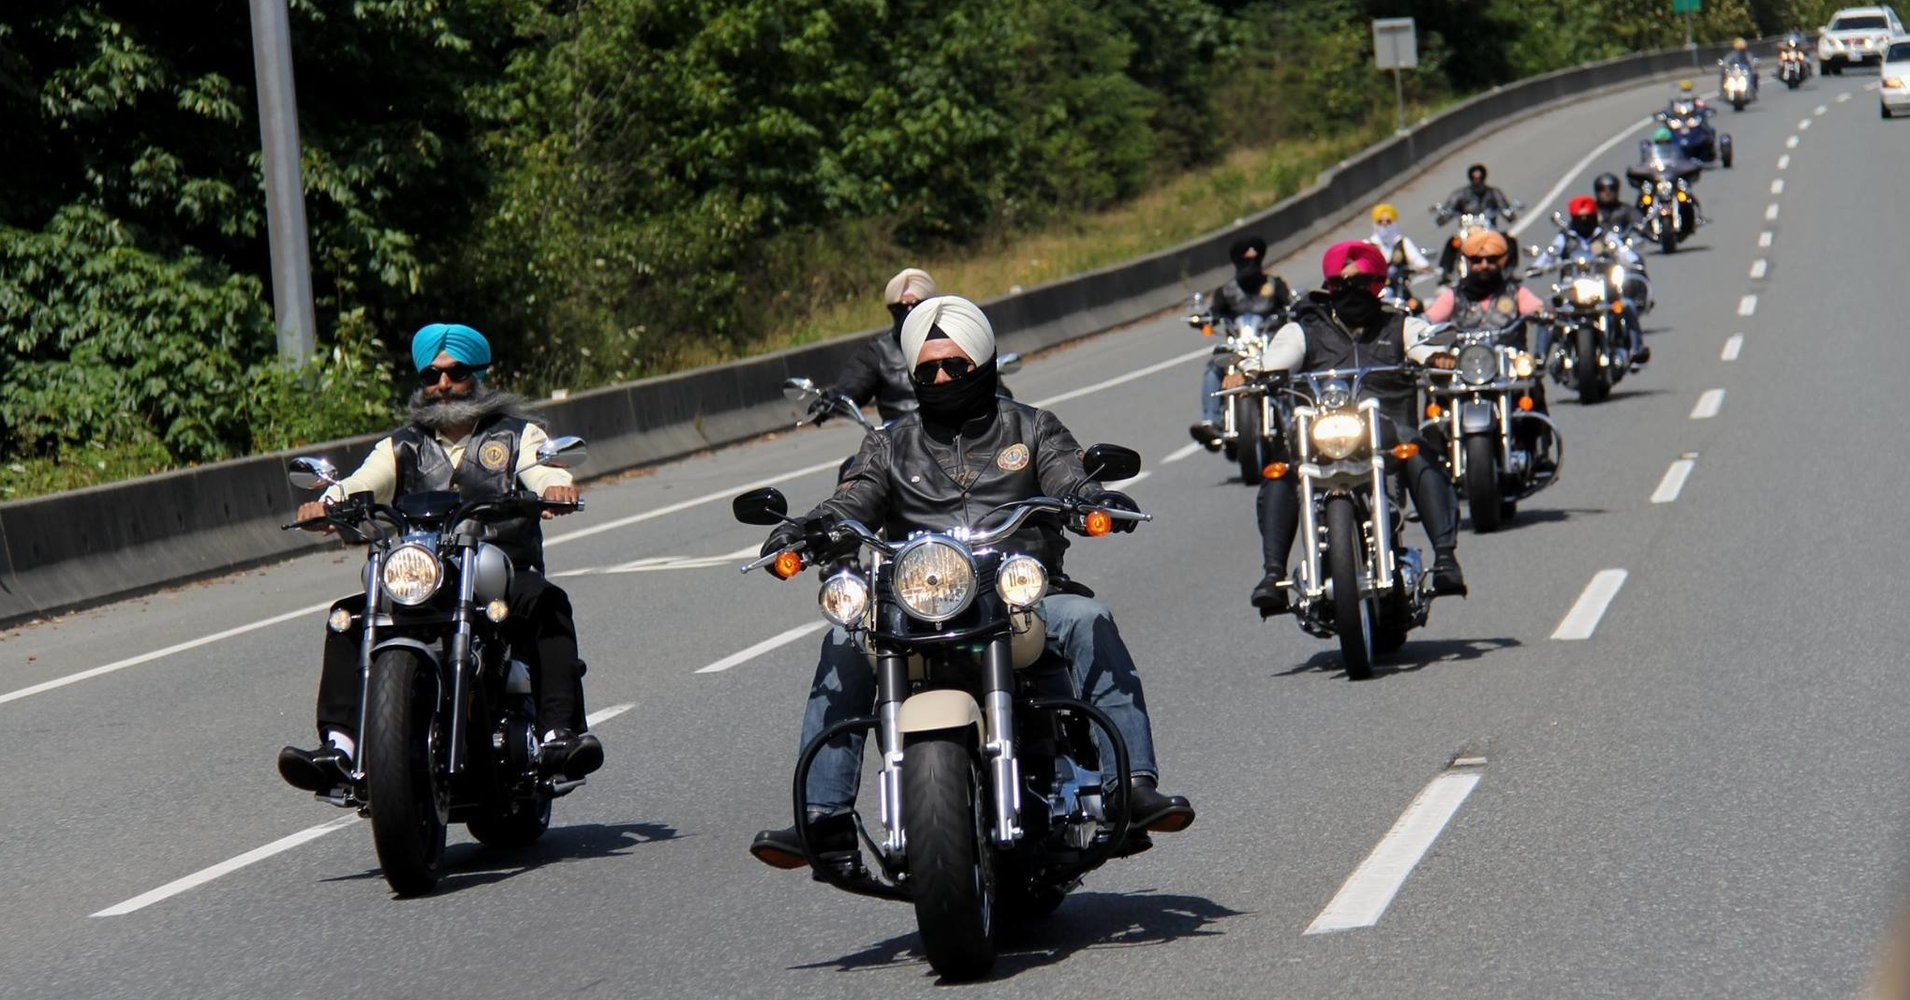 Turban-wearing Sikh riders in Alberta will be exempted from wearing helmets